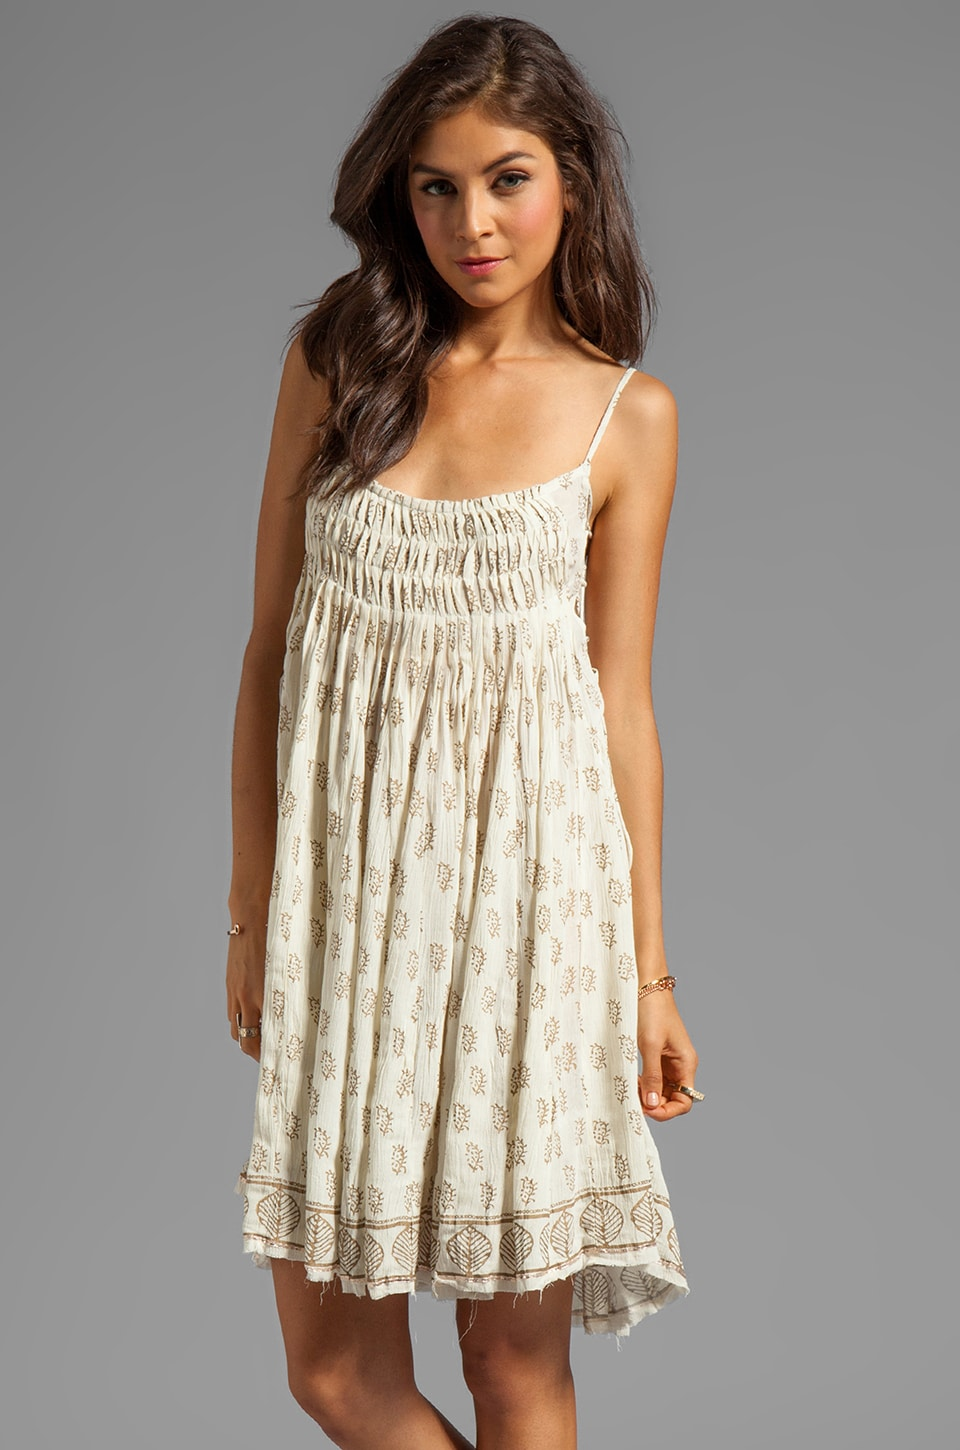 Free People Palm Imperial Dress in Ivory